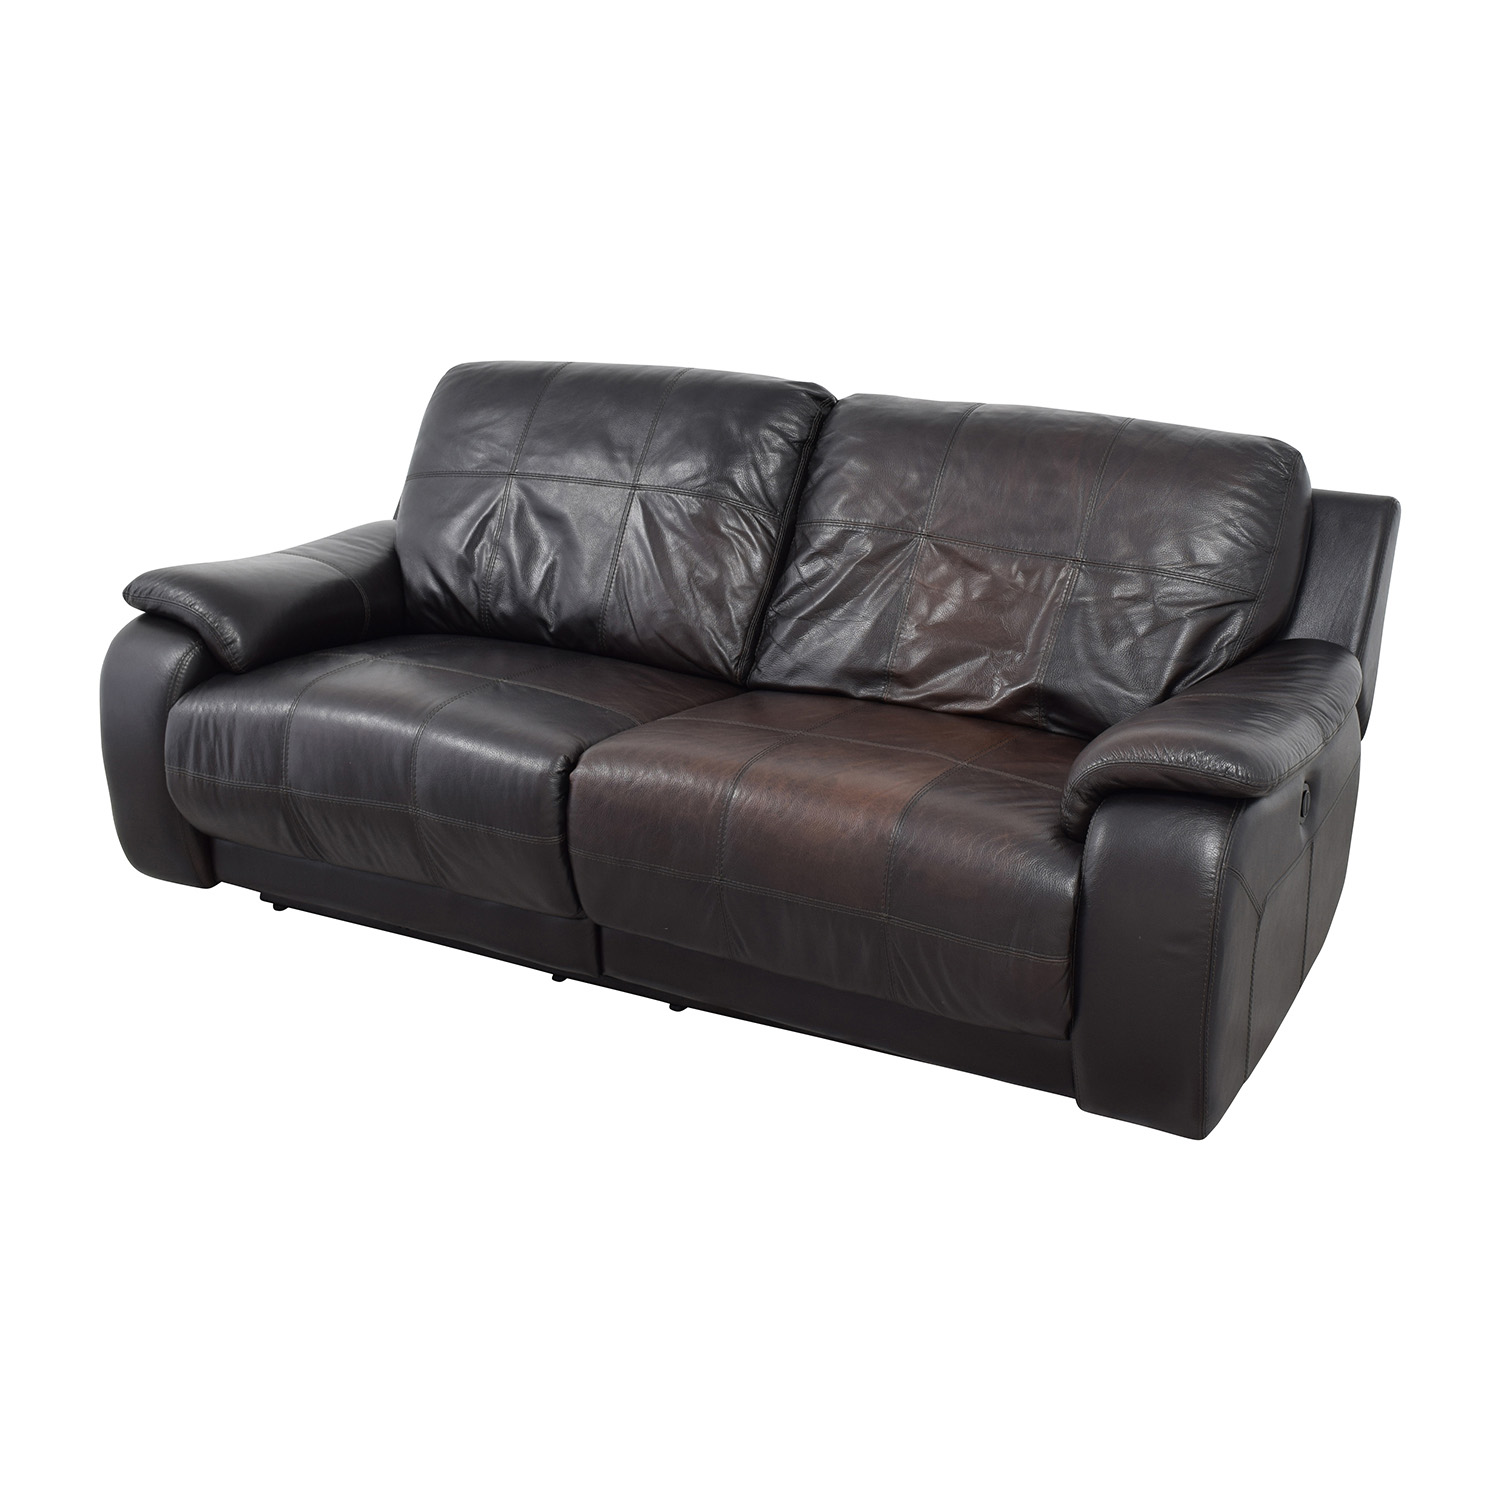 87 off raymour and flanigan raymour and flanigan for Classic loveseat